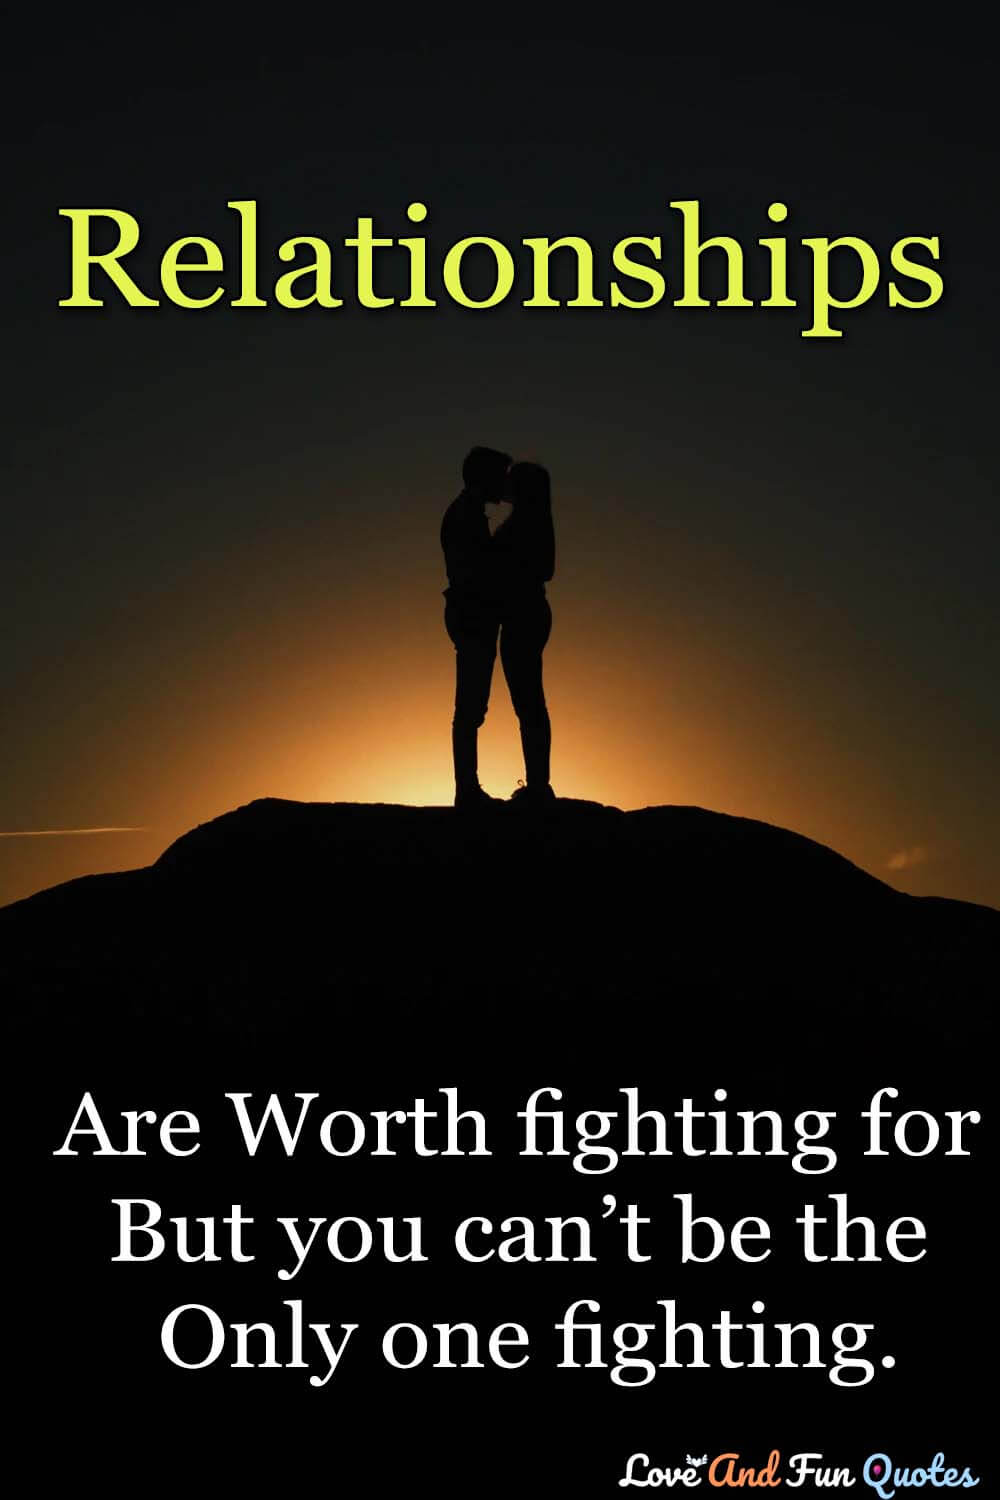 Relationships-are-worth-fighting-for-but-you-cant-be-the-only-one-fighting.-Anonymous